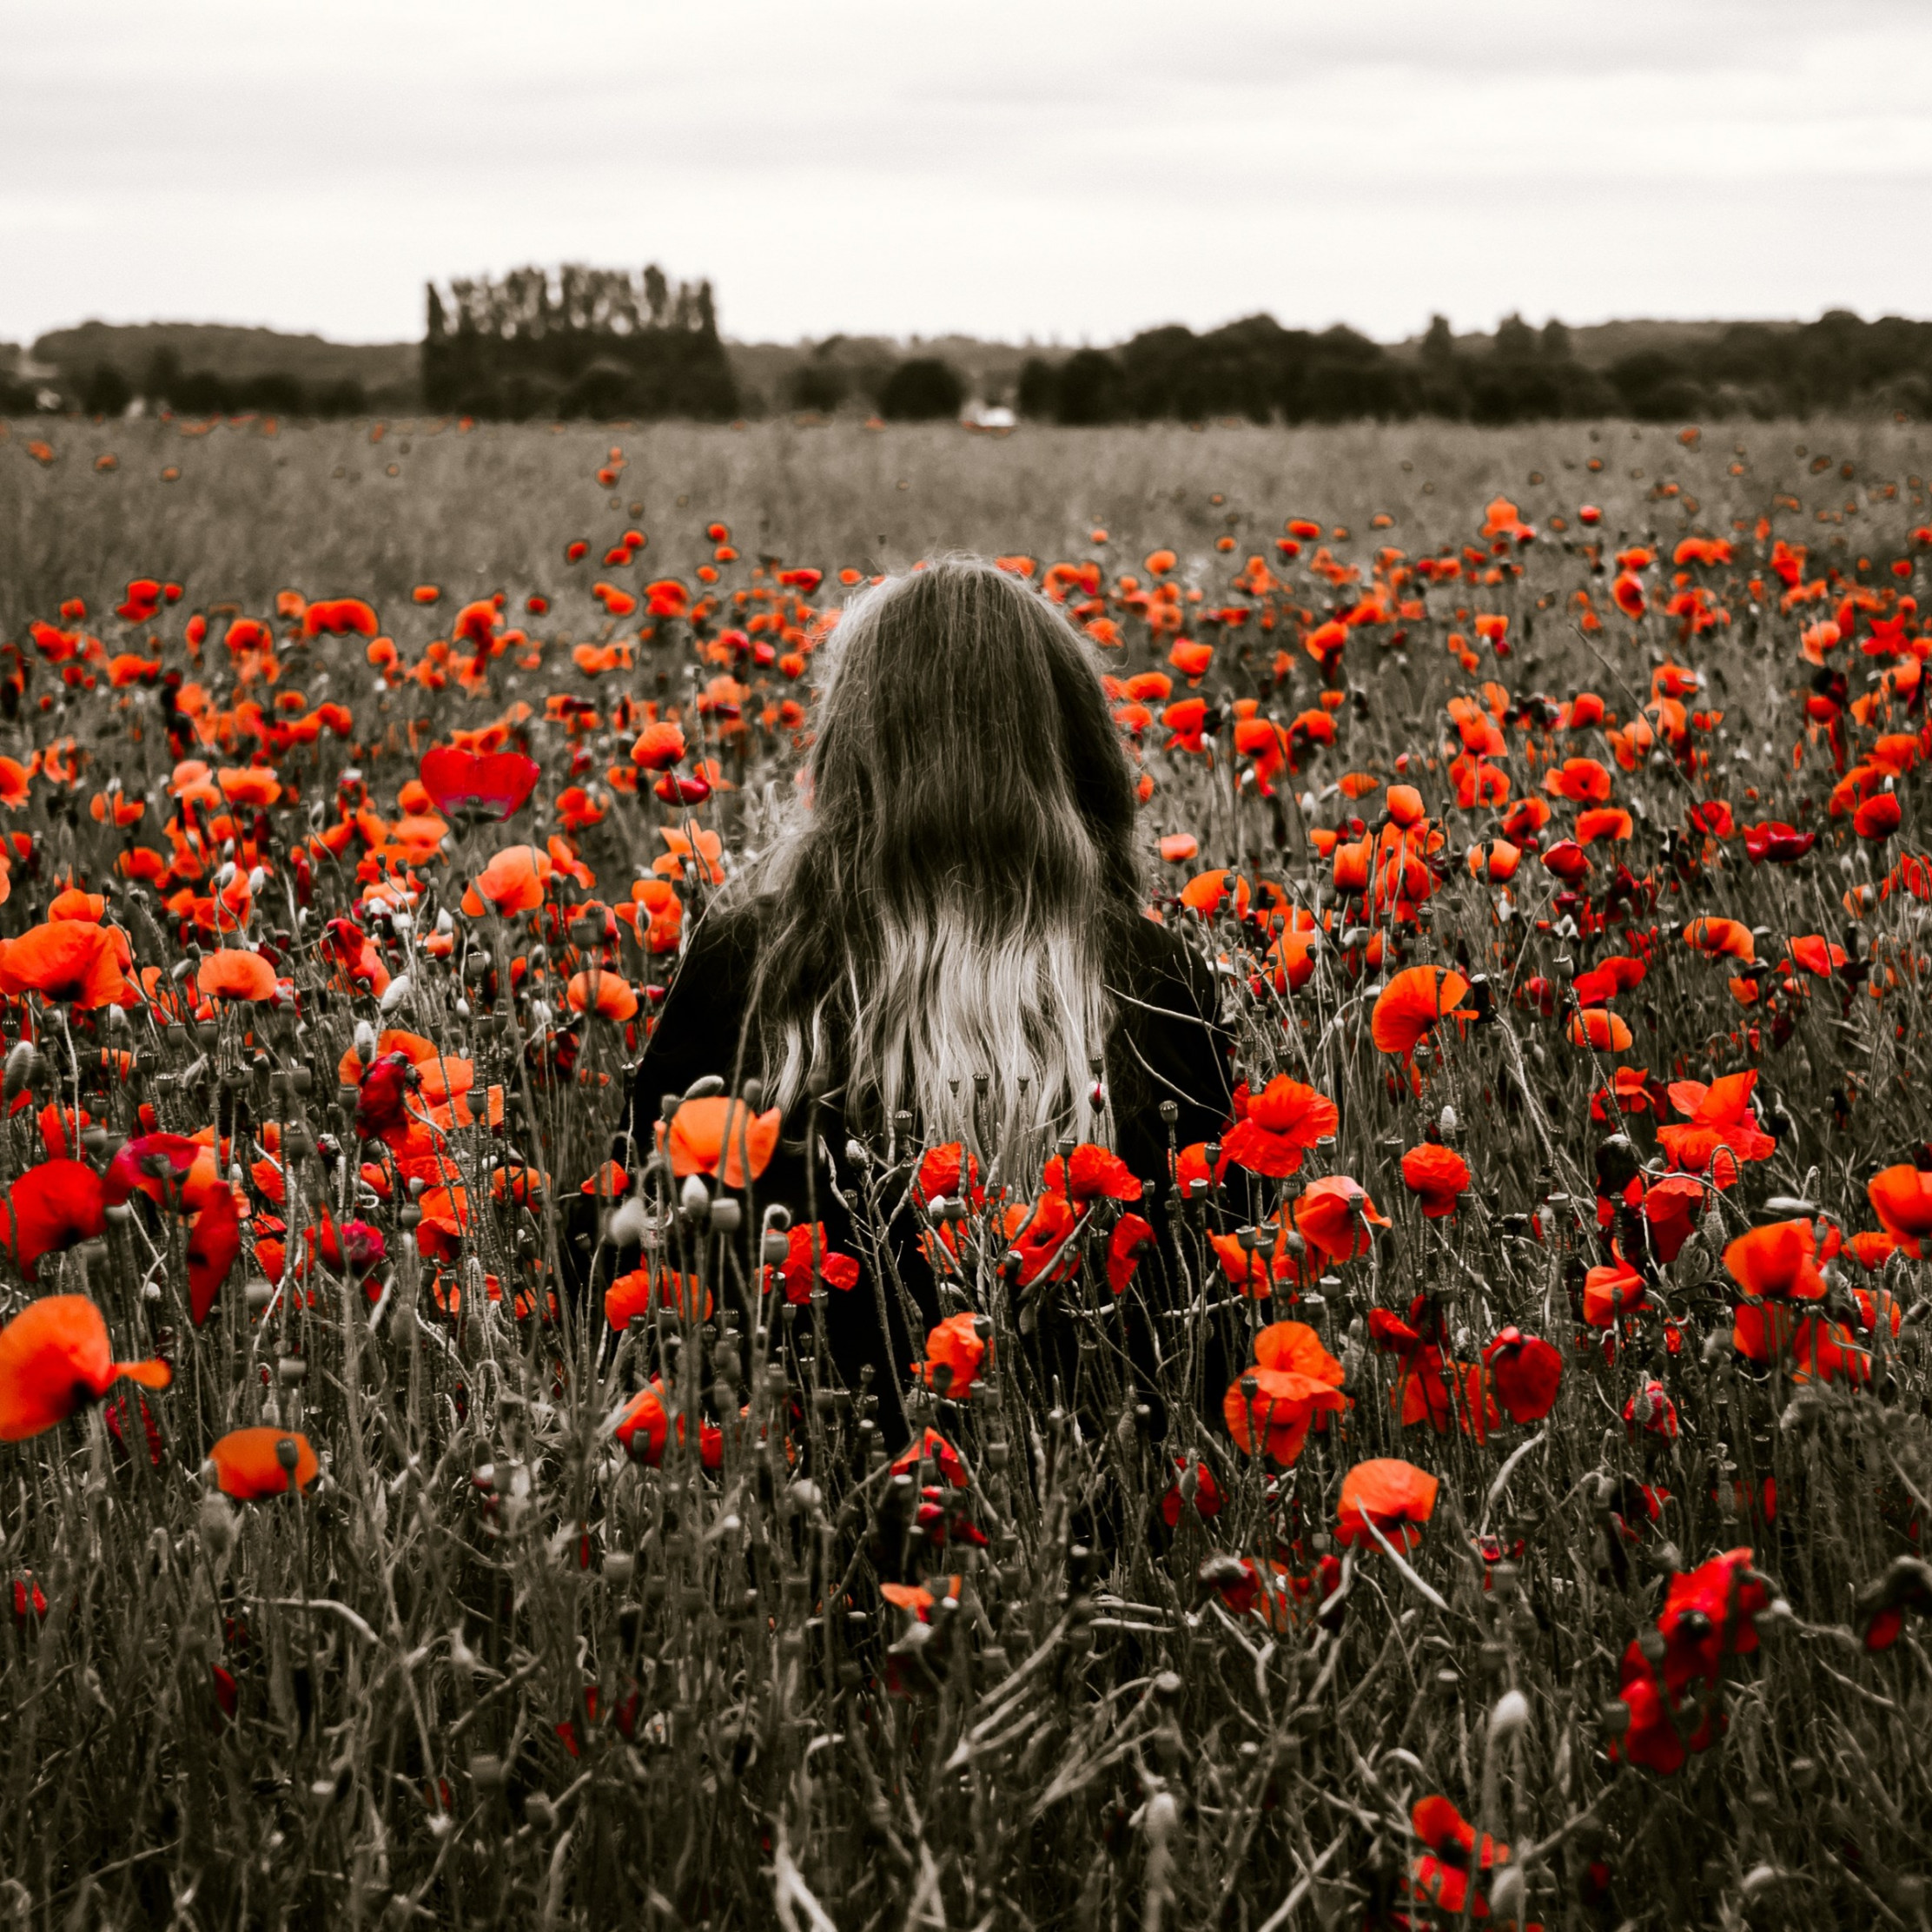 Girl in the field with red poppies wallpaper 2224x2224